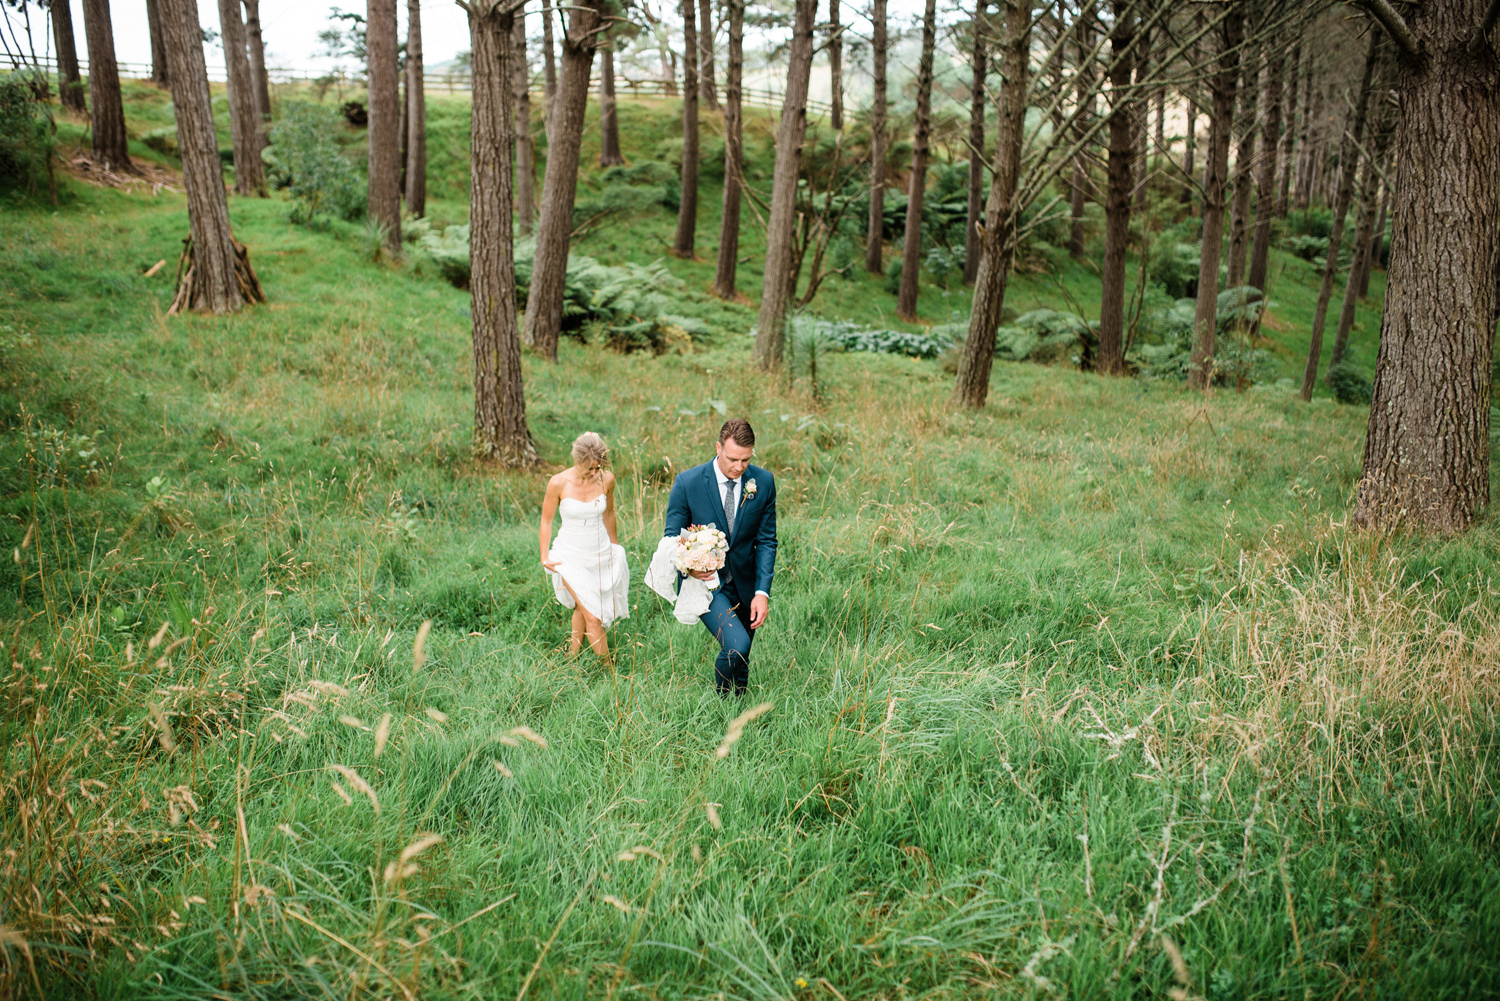 new-zealand-wedding-film-photographer-ryan-flynn-0027.JPG